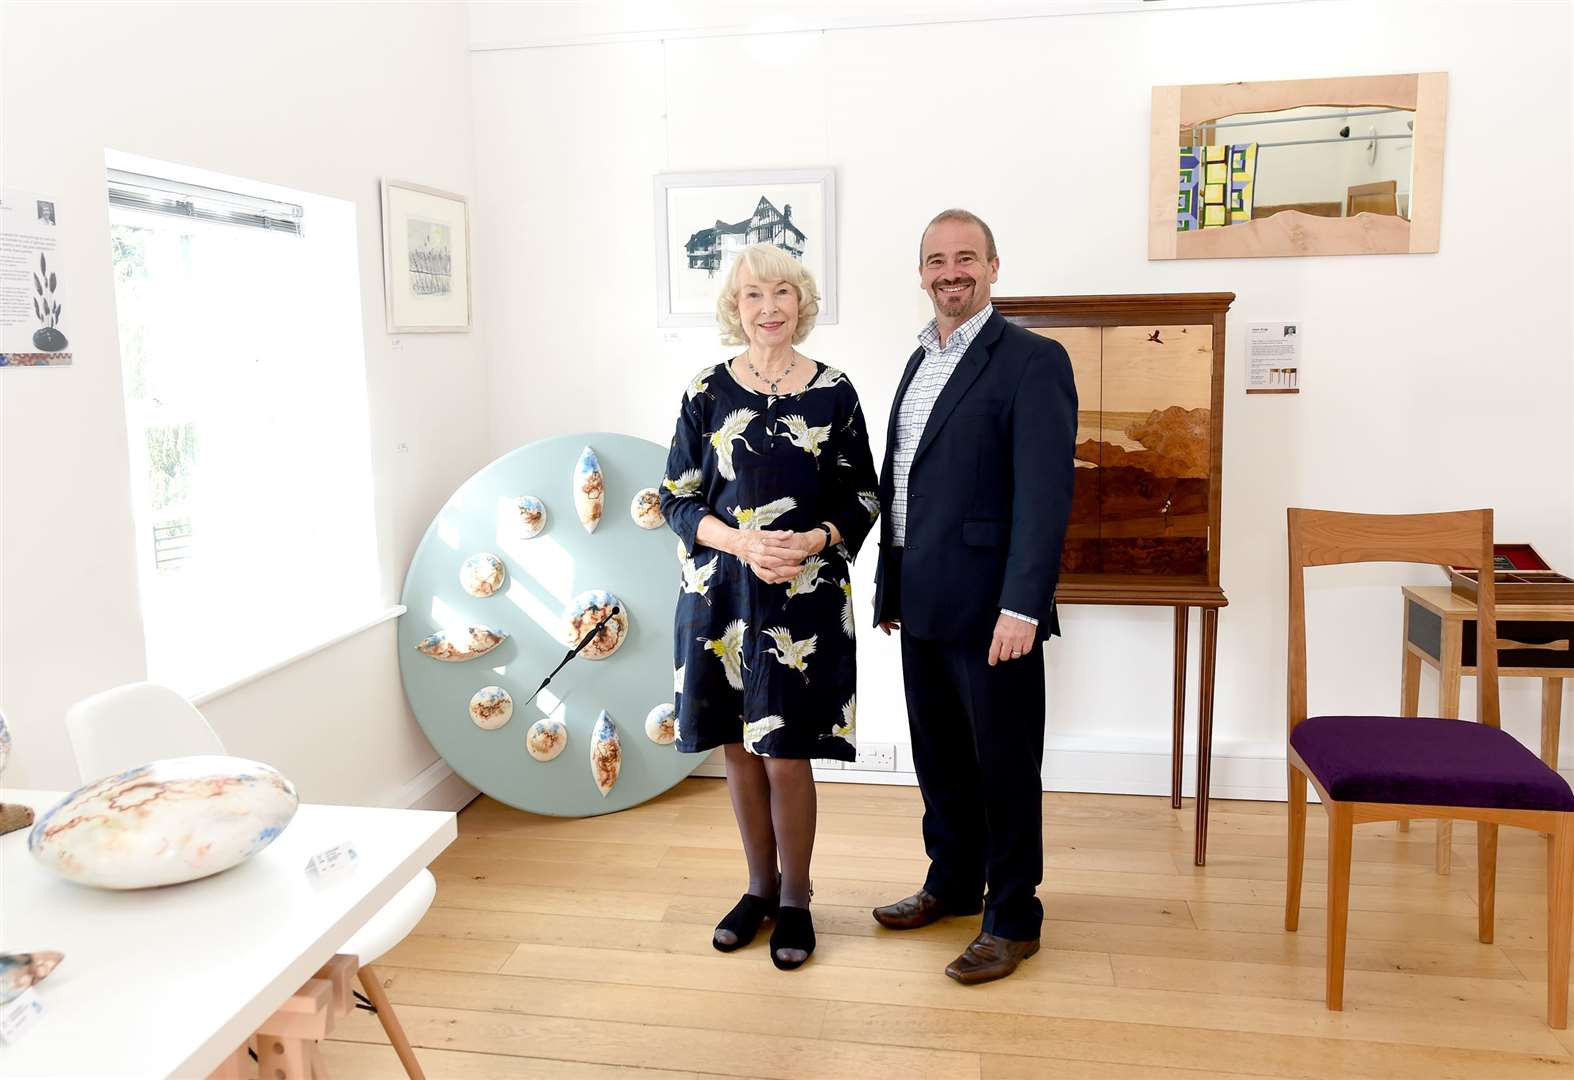 PICTURES: Five artists showcased at Great Cornard art gallery